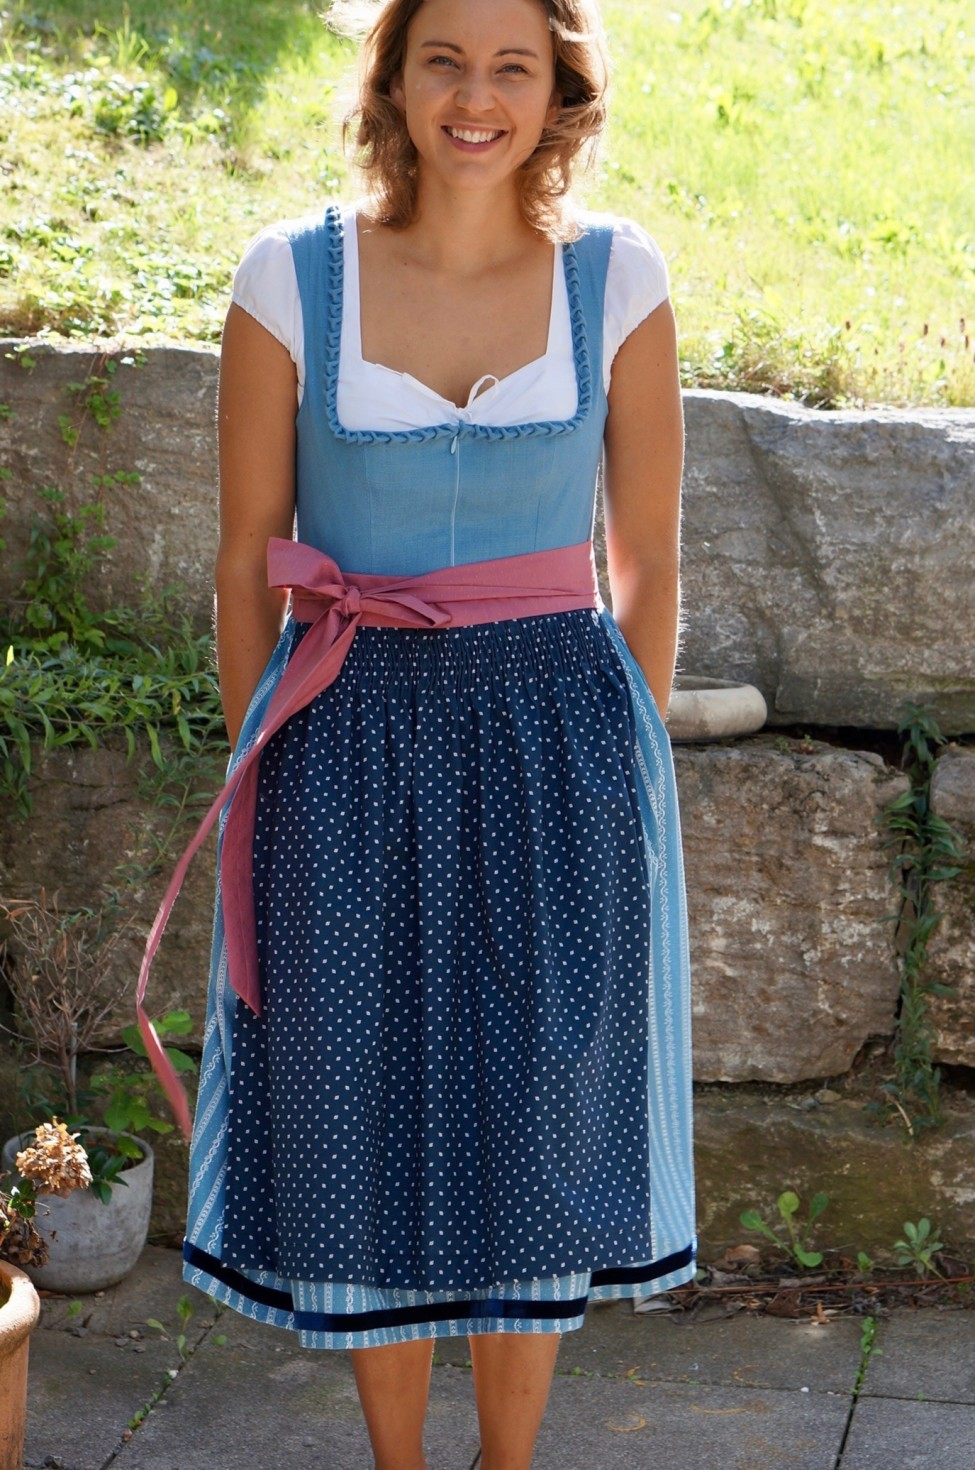 burda style Nutzerkreation CoriEiscreme Dirndl Kreation